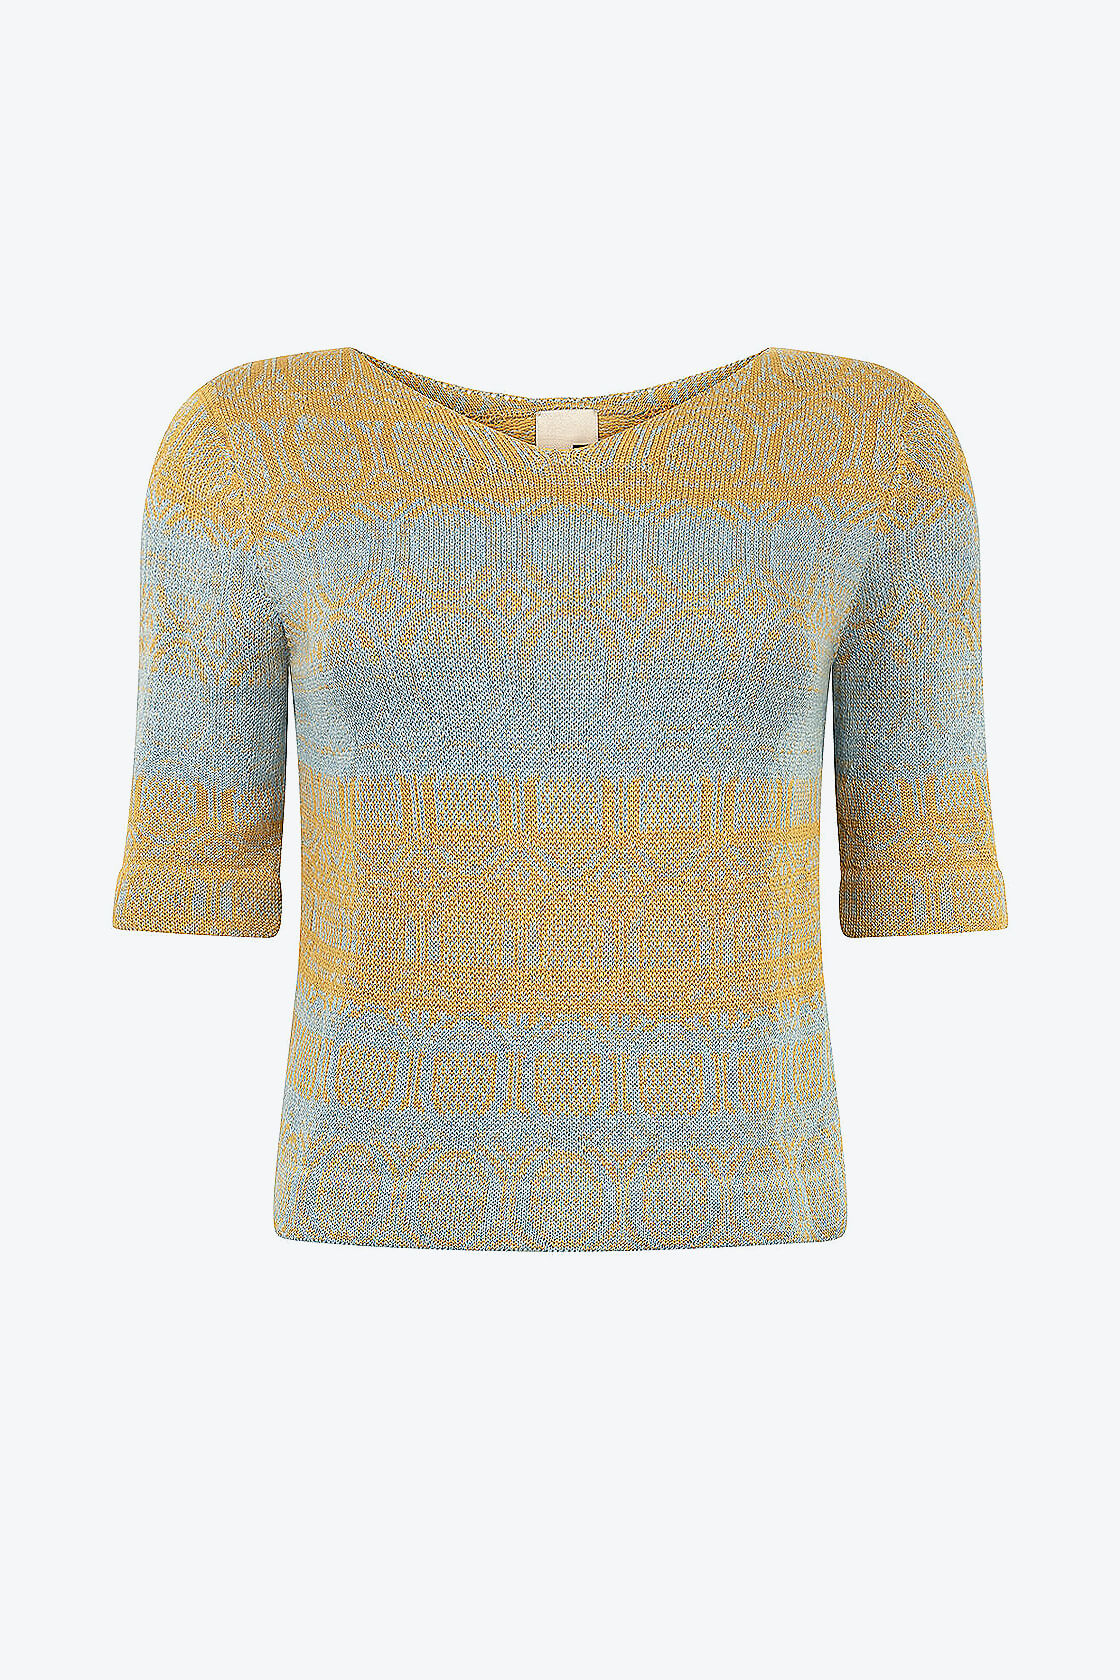 Knitted Cotton Jumper With V Neck And 3 4 Sleeves Denim Light Blue With Yellow Copper